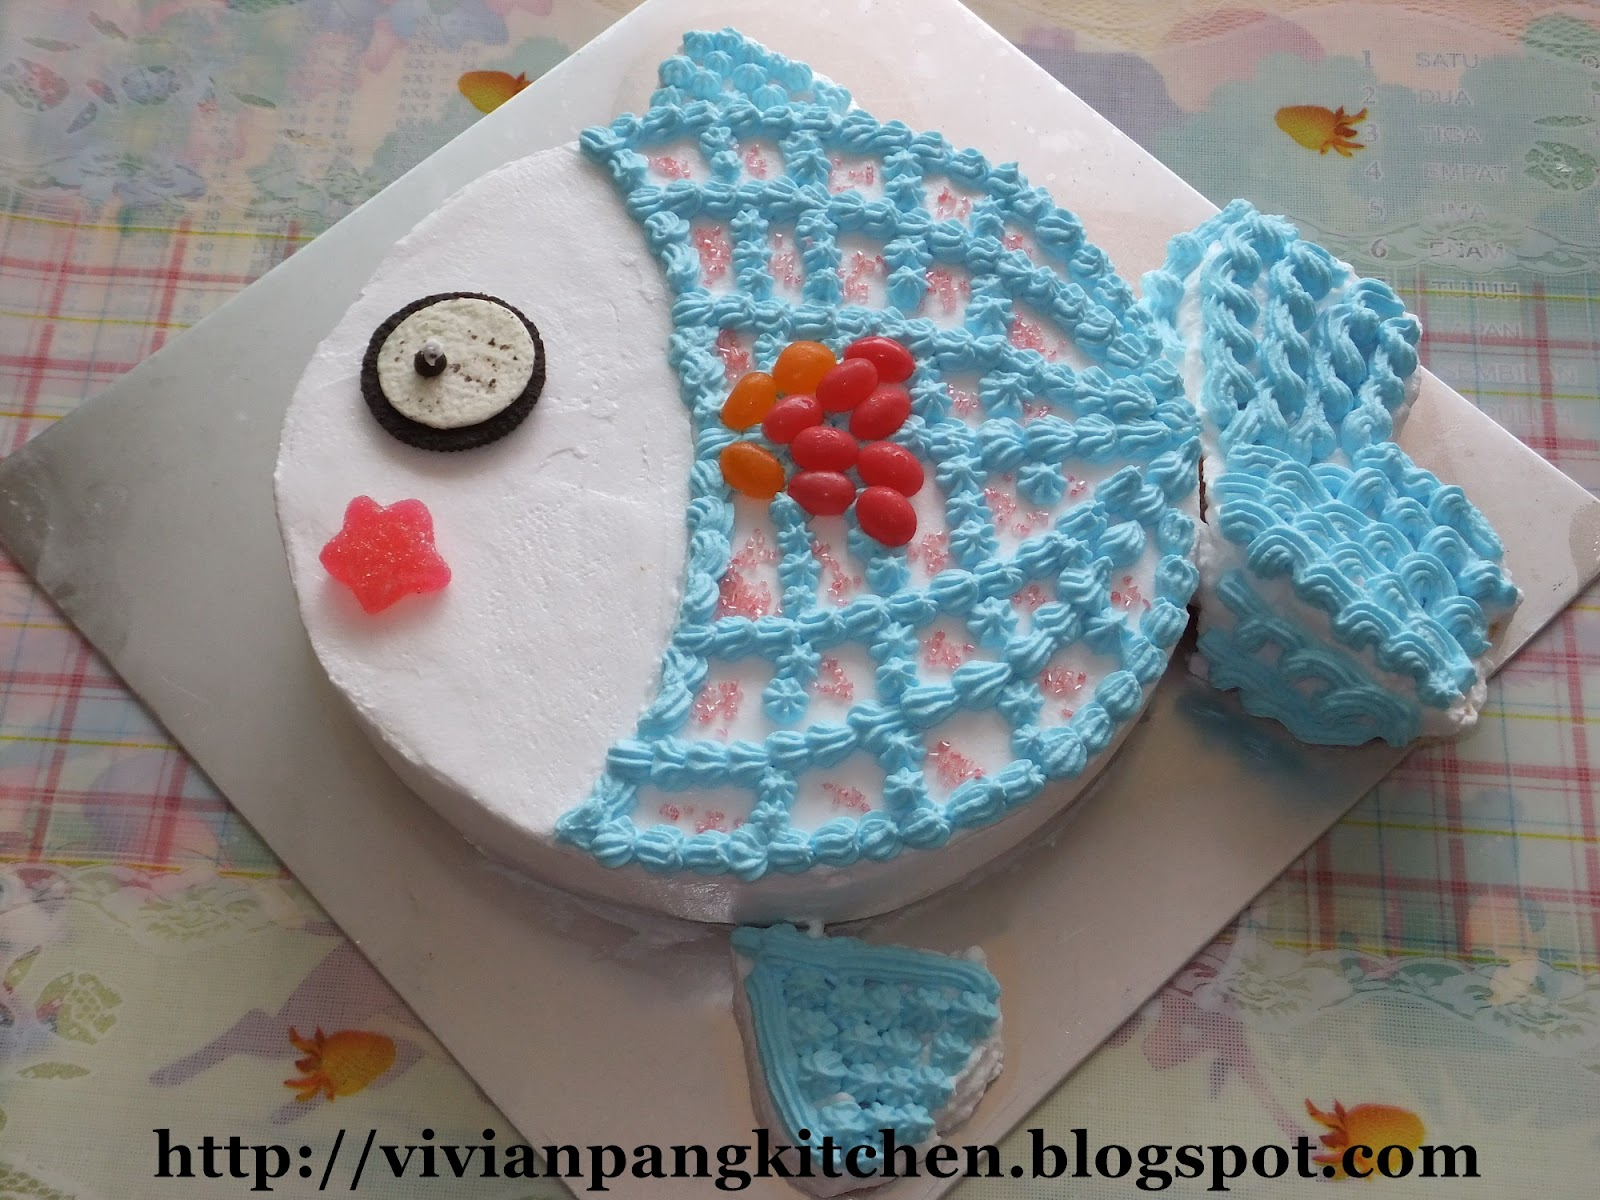 7 Year Old Birthday Cakes http://vivianpangkitchen.blogspot.com/2012/02/my-elder-son-turns-7th.html